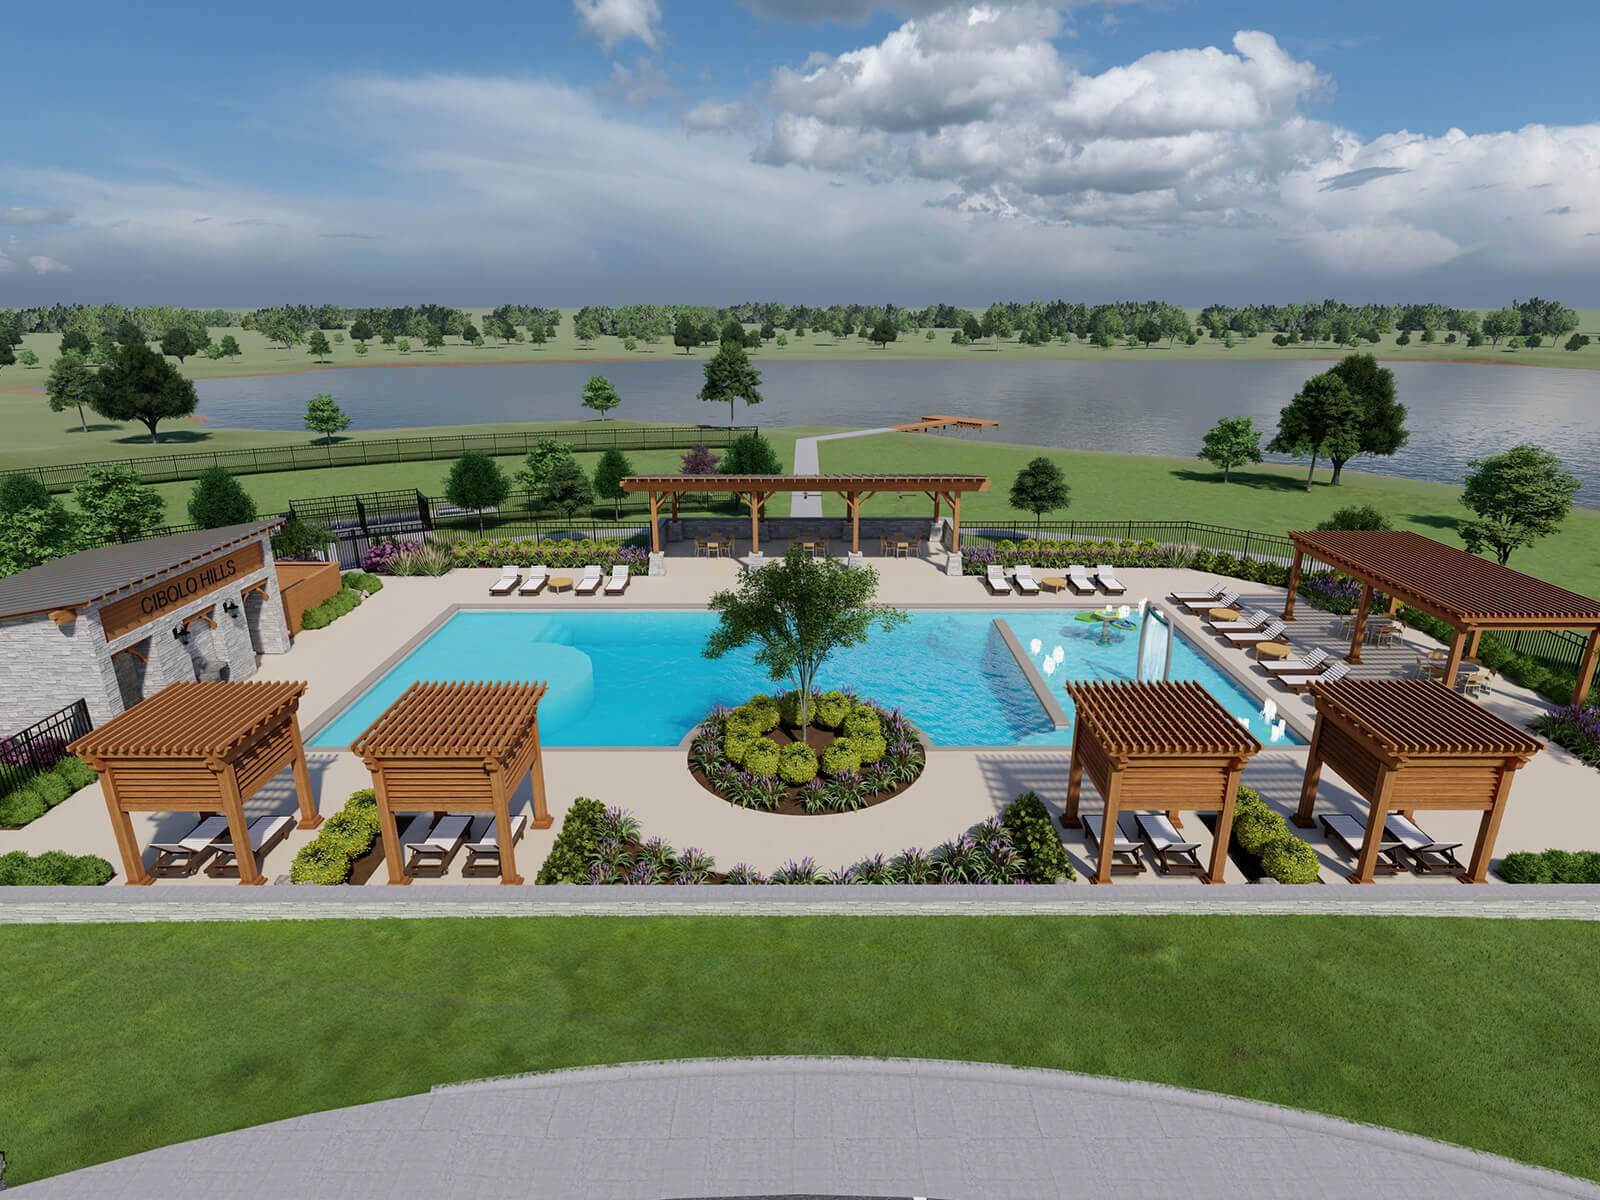 The Cibolo Hills community will include a community center with pool.